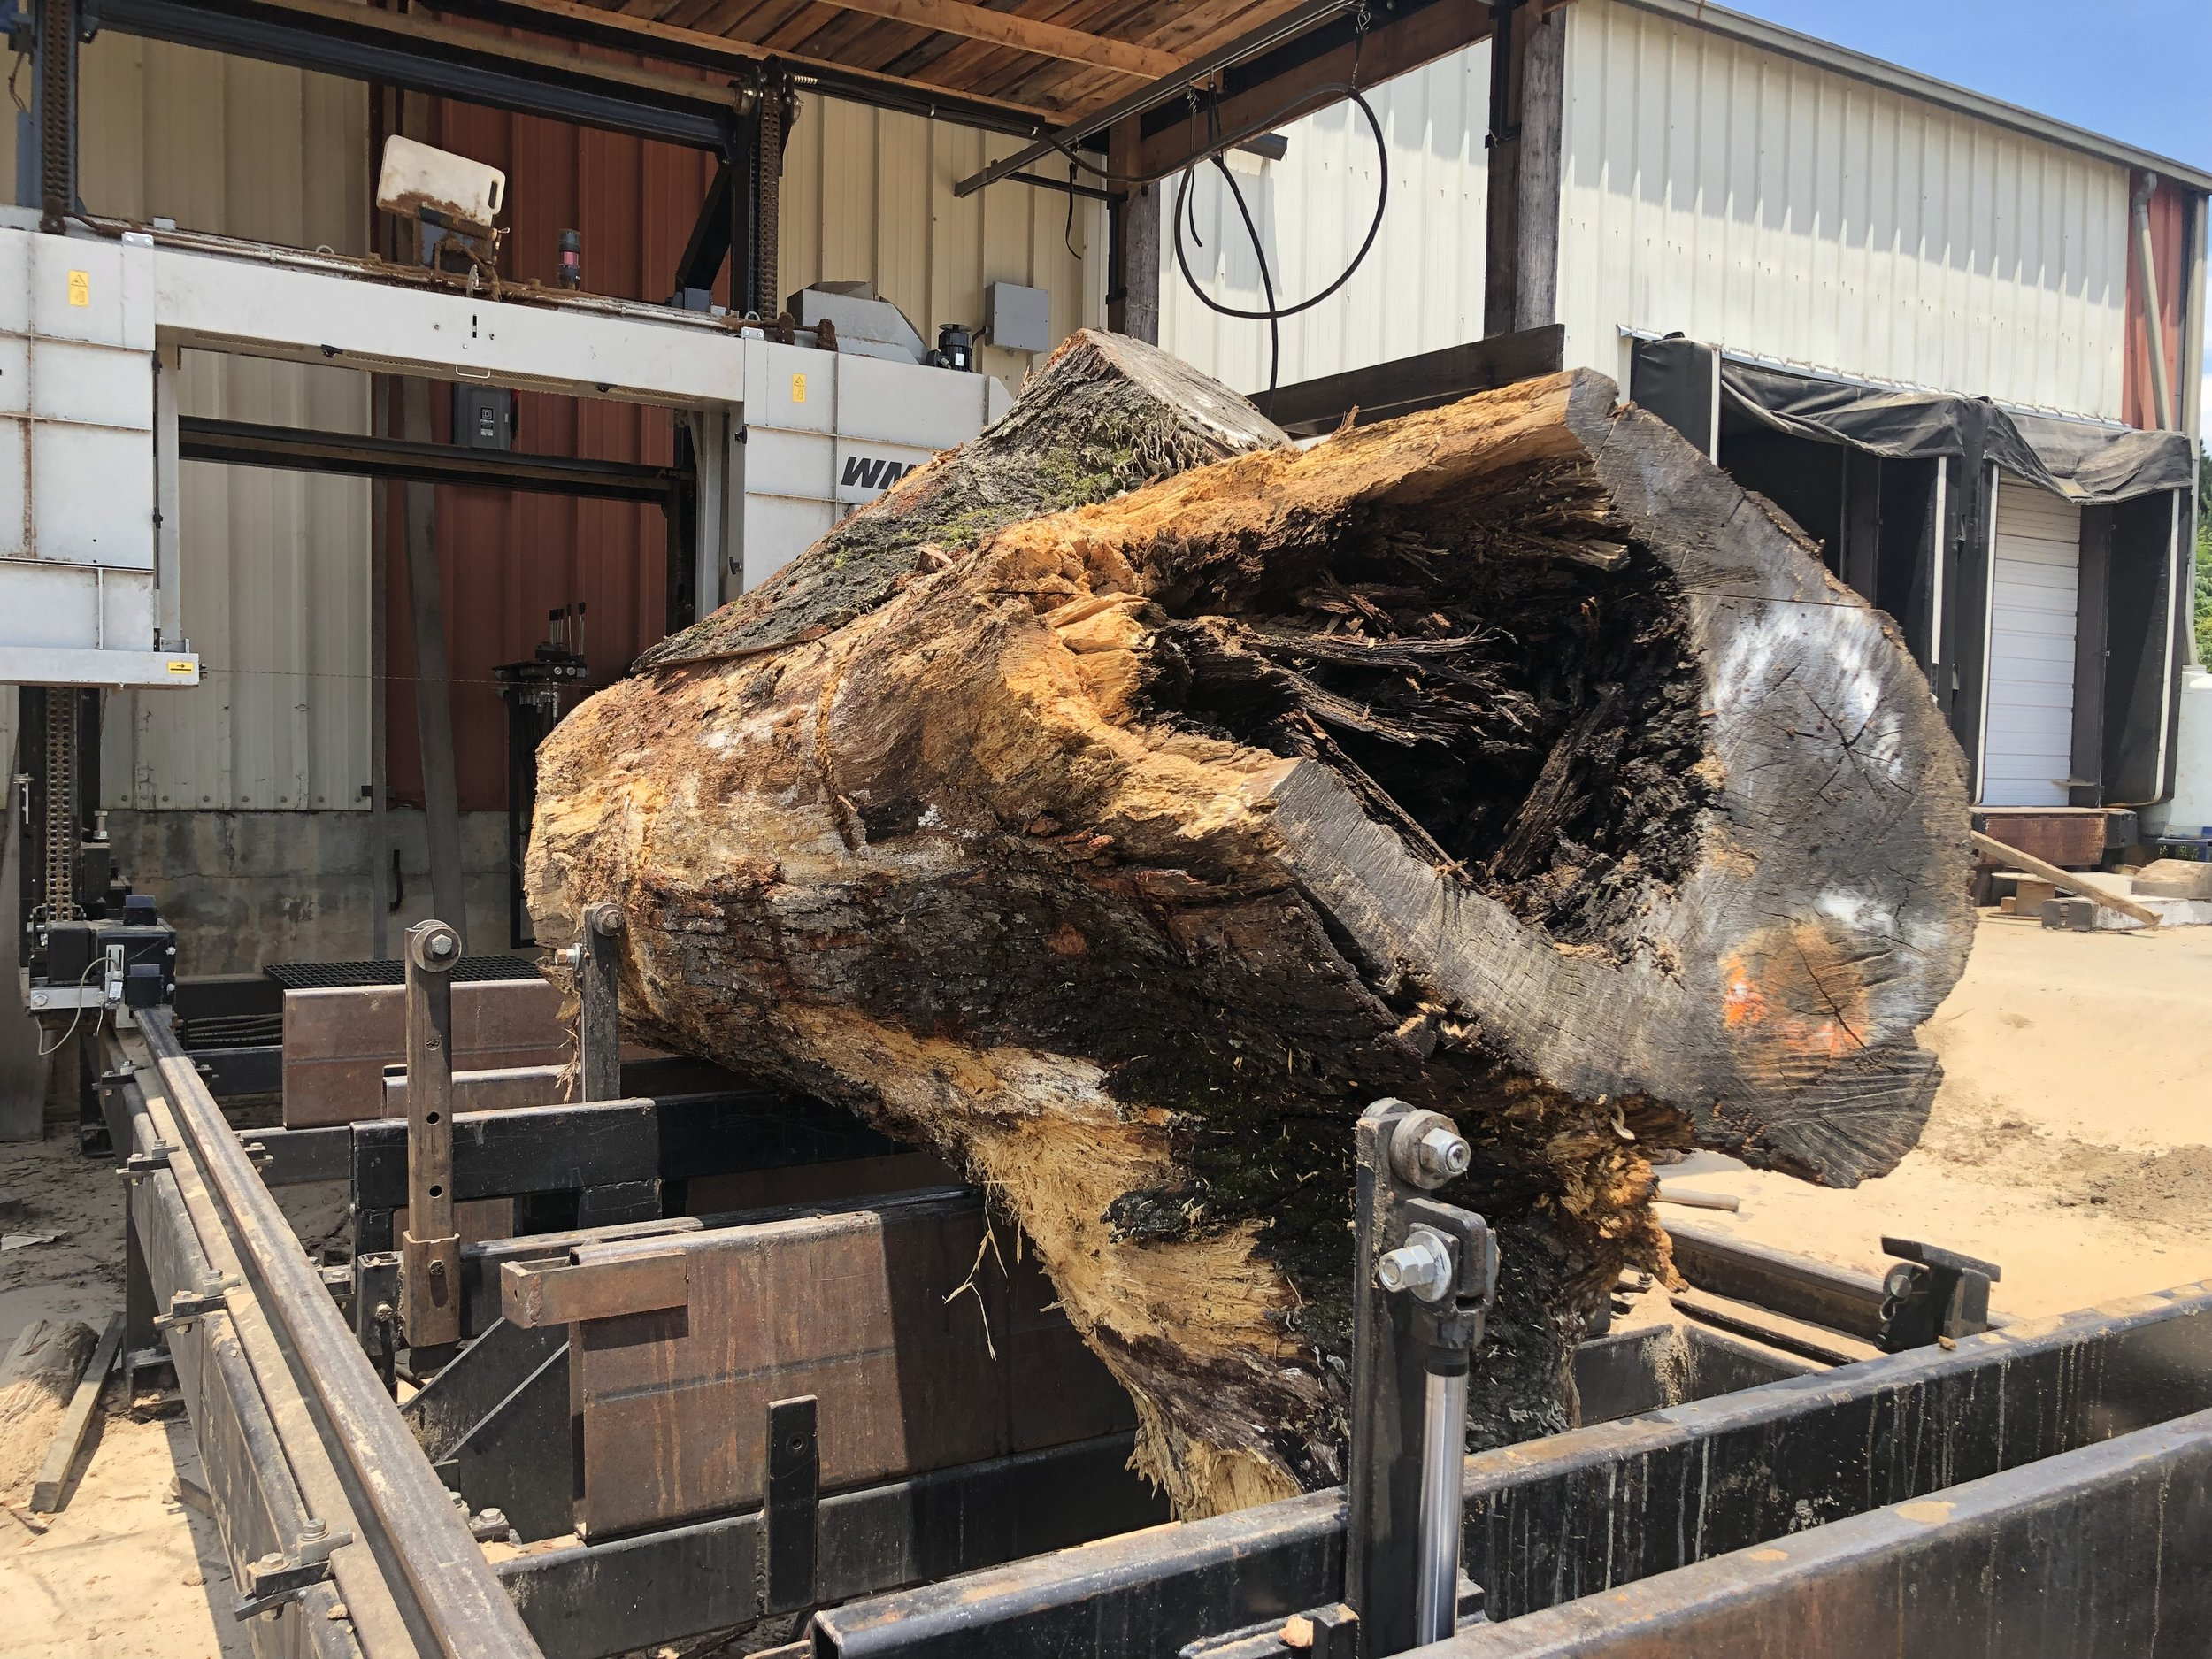 Custom hydraulics on the mill's carriage allows Eutree sawyers to seamlessly rotate the log for the best cut.